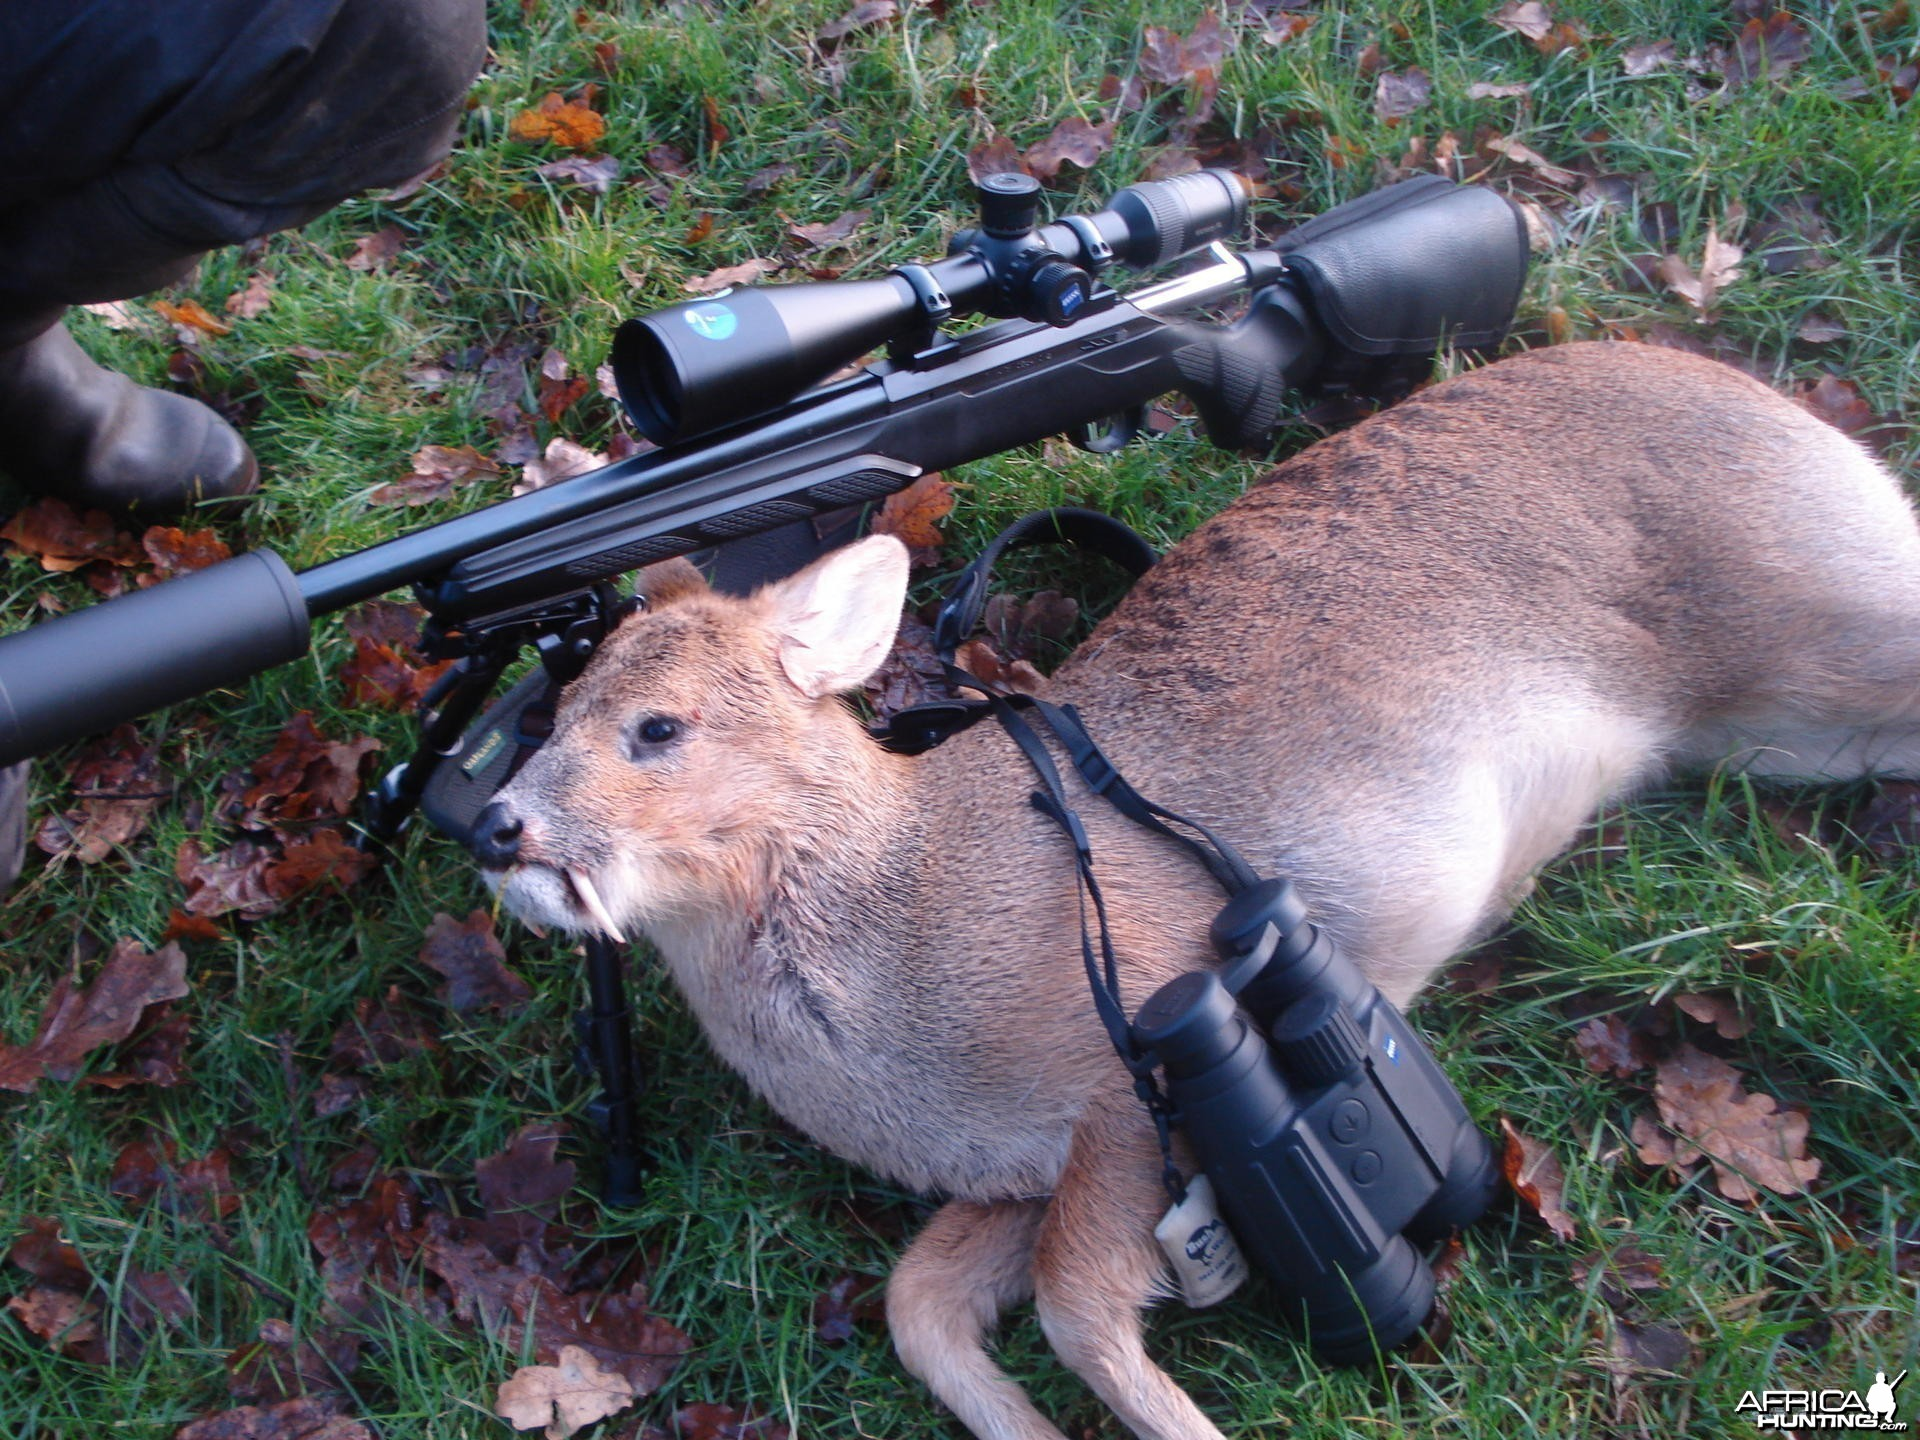 Chinese water deer hunt in the UK